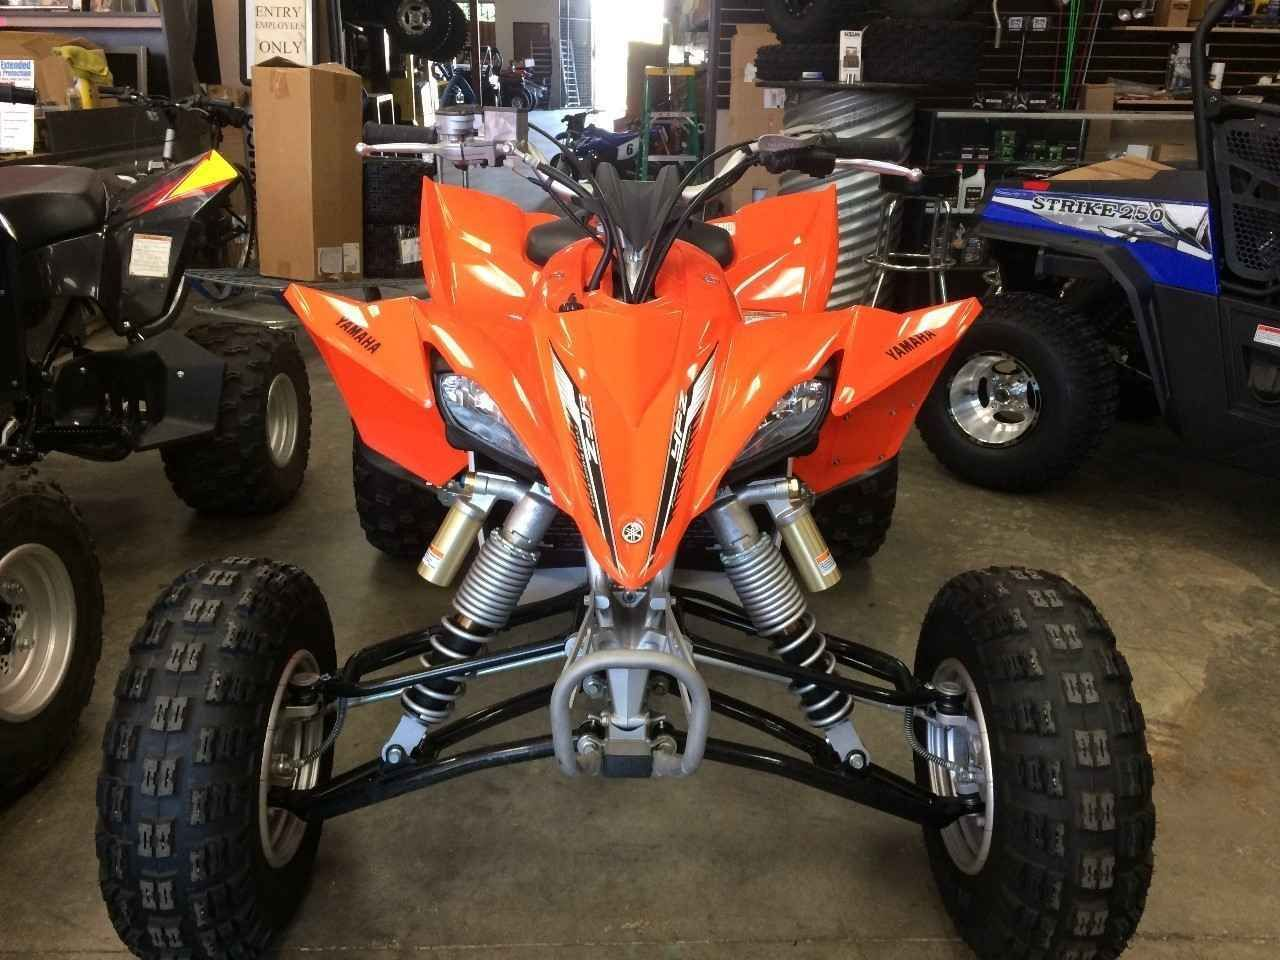 Used 2014 Yamaha YFZ 450R ATVs For Sale in California on